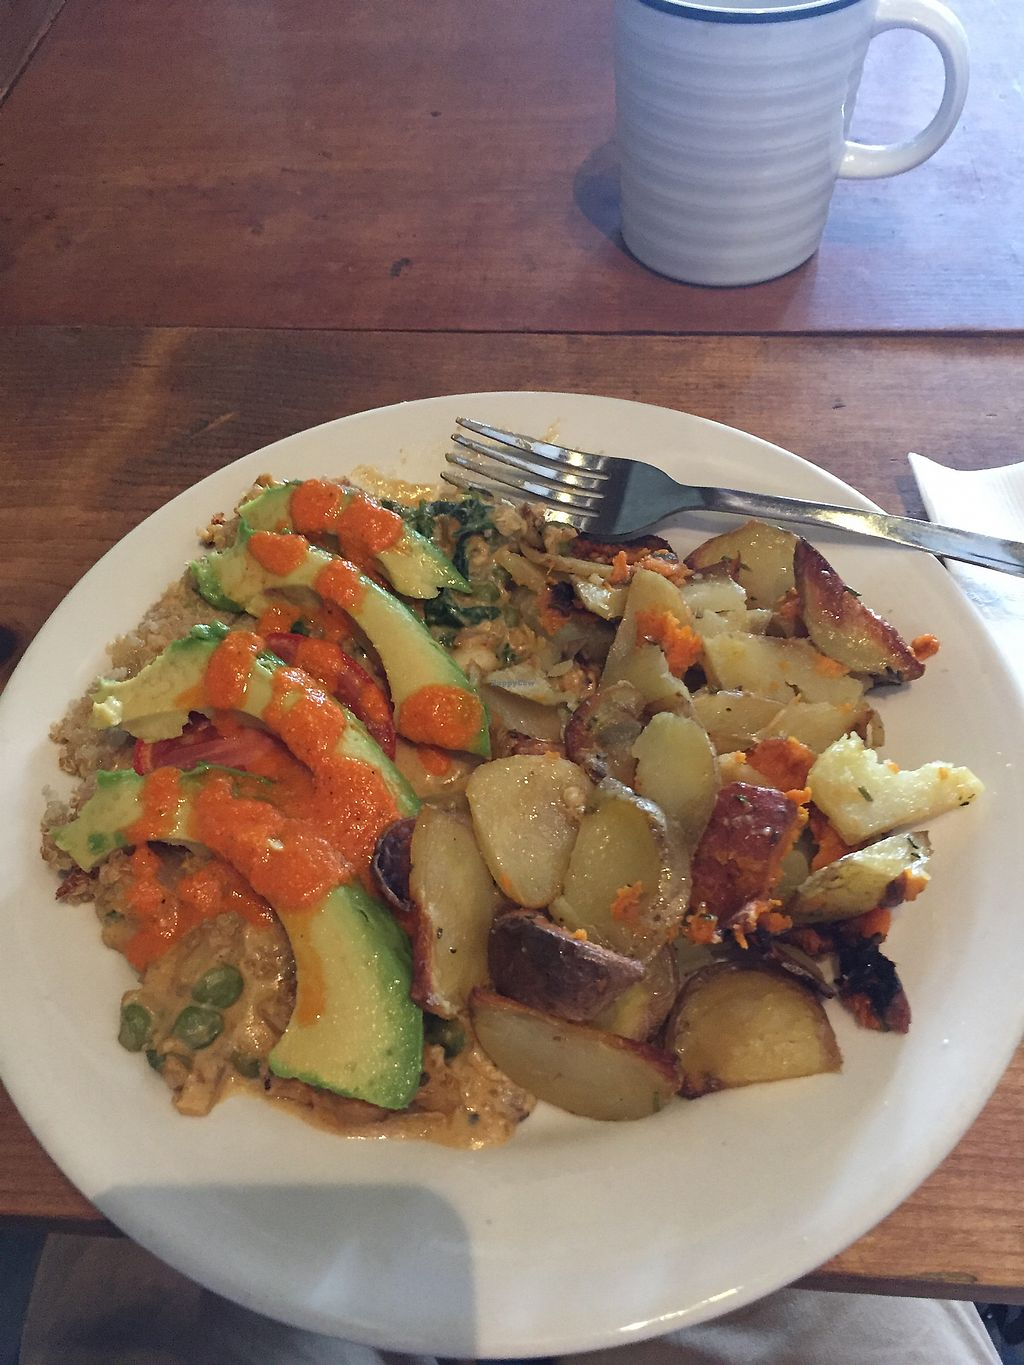 "Photo of Elderberries Cafe  by <a href=""/members/profile/WolfPatrick"">WolfPatrick</a> <br/>Vegan Frittata!!! <br/> July 25, 2017  - <a href='/contact/abuse/image/19682/284504'>Report</a>"